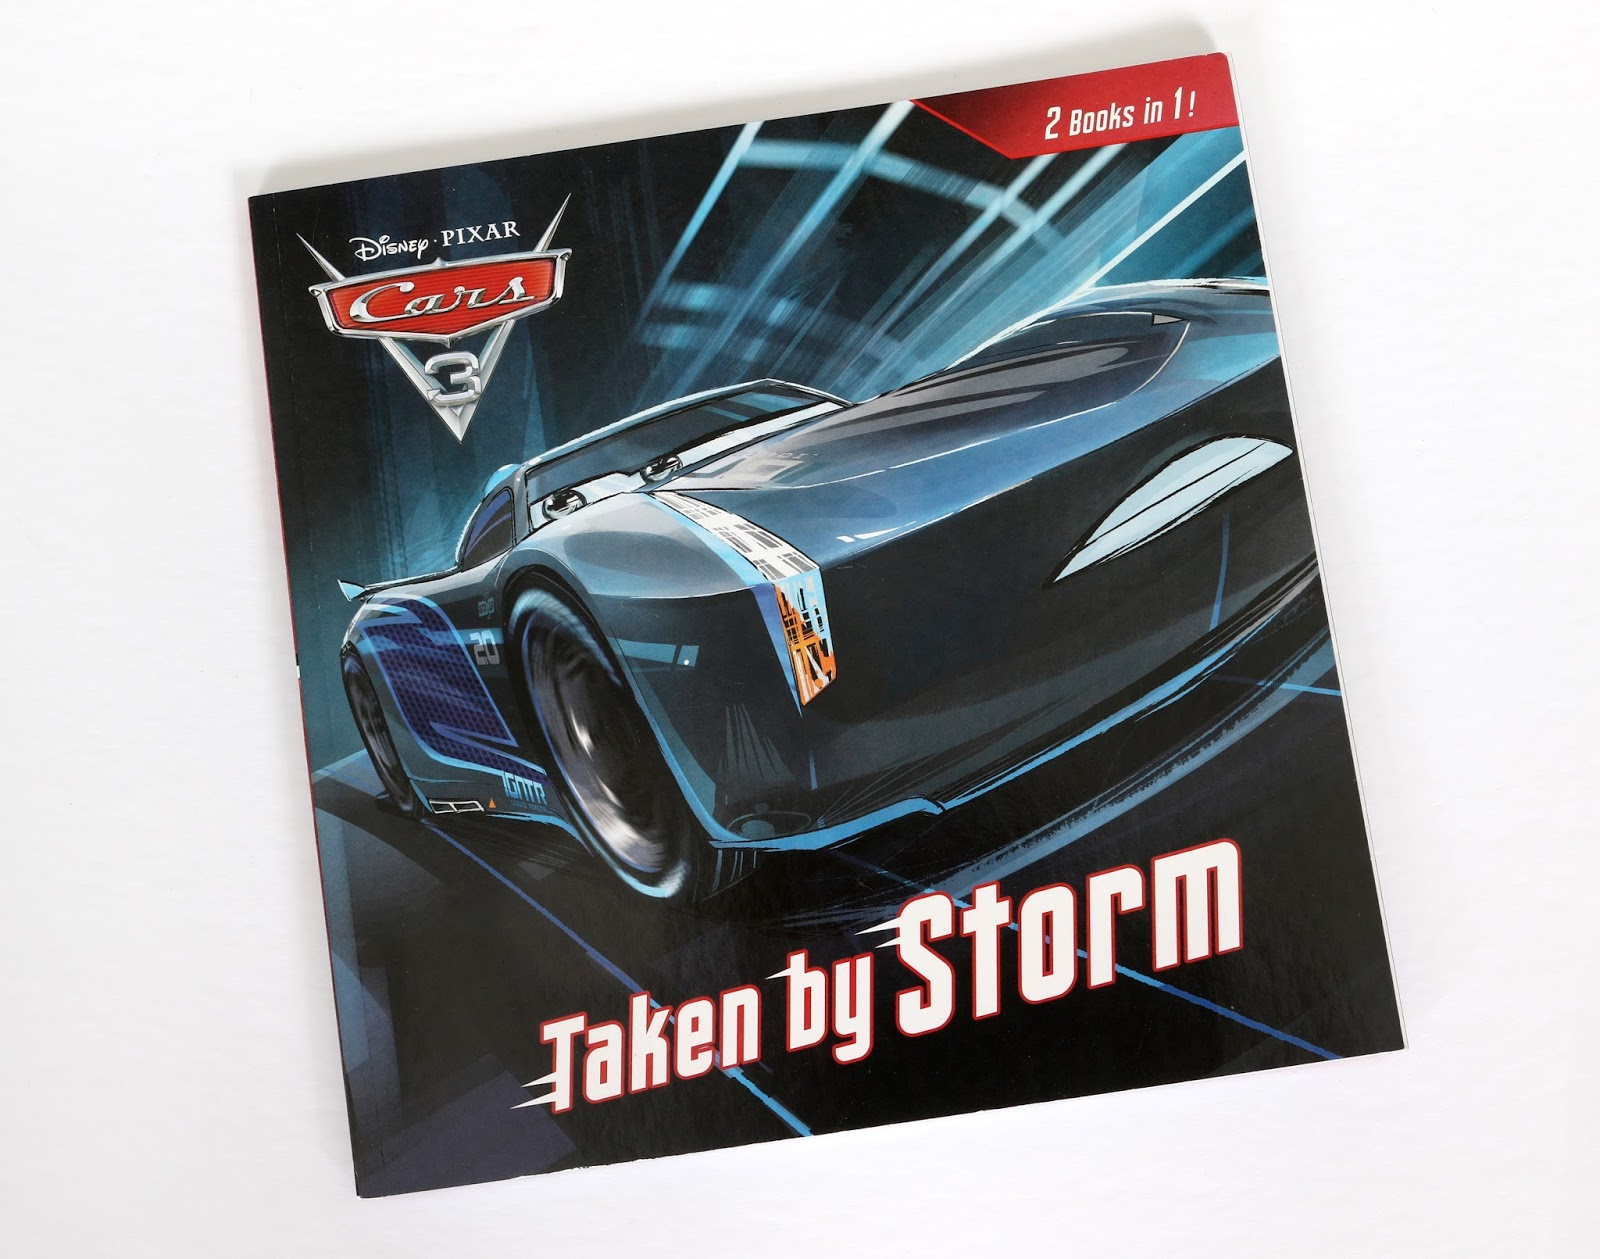 Cars 3 Taken by Storm / How to be a Great Racer 2 Books in 1 review